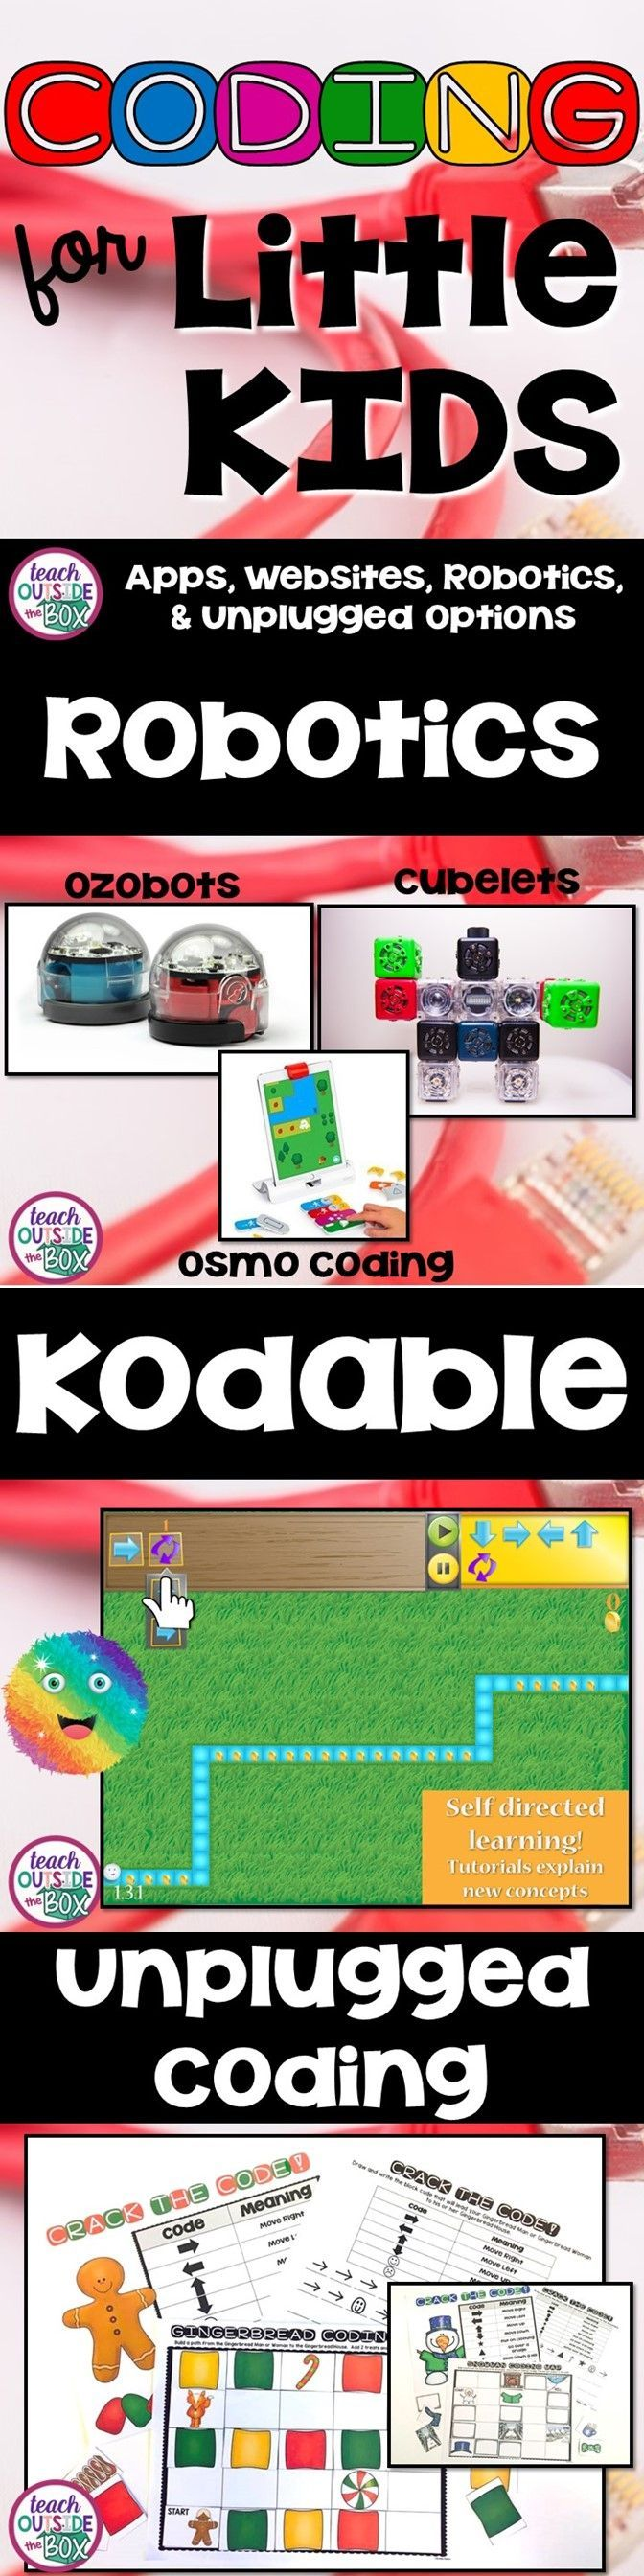 Apps, Websites, Robotics toys, and unplugged coding options for young children! | Hour of Code | Elementary Coding